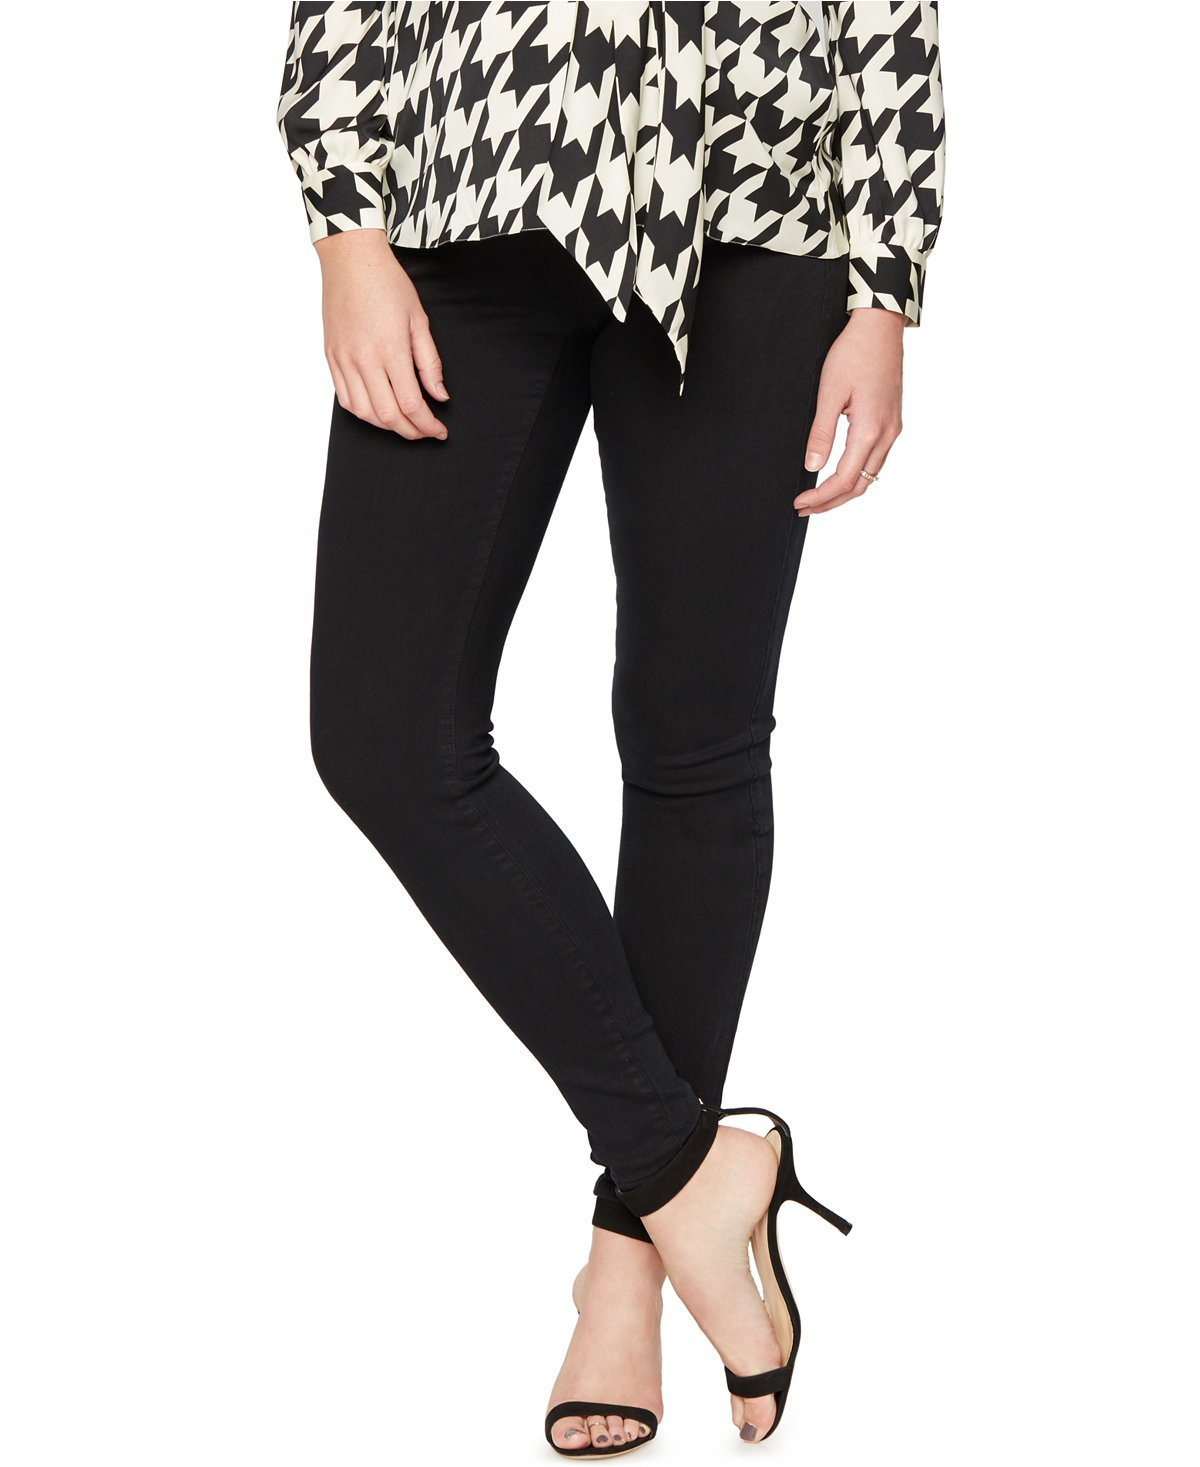 Belly Bliss Soft Black Maternity Skinny Jeans (X-Large)